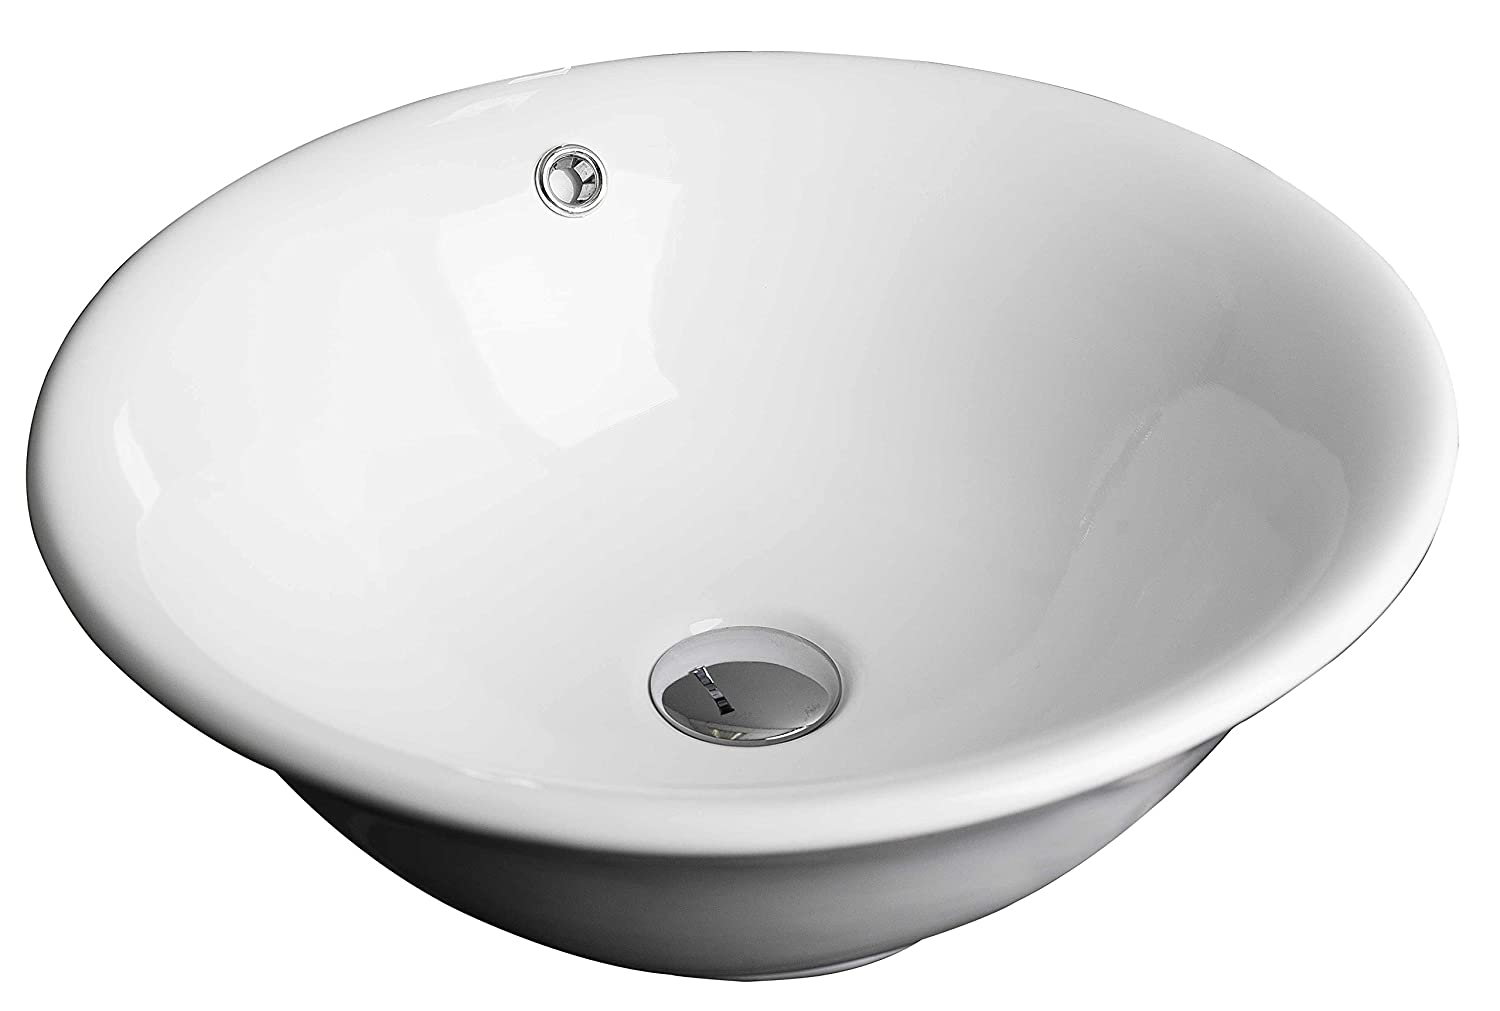 18-in. W x 18-in. D Above Counter Round Vessel In White Color For Deck Mount Faucet IMG Imports Inc. AI-7-1306